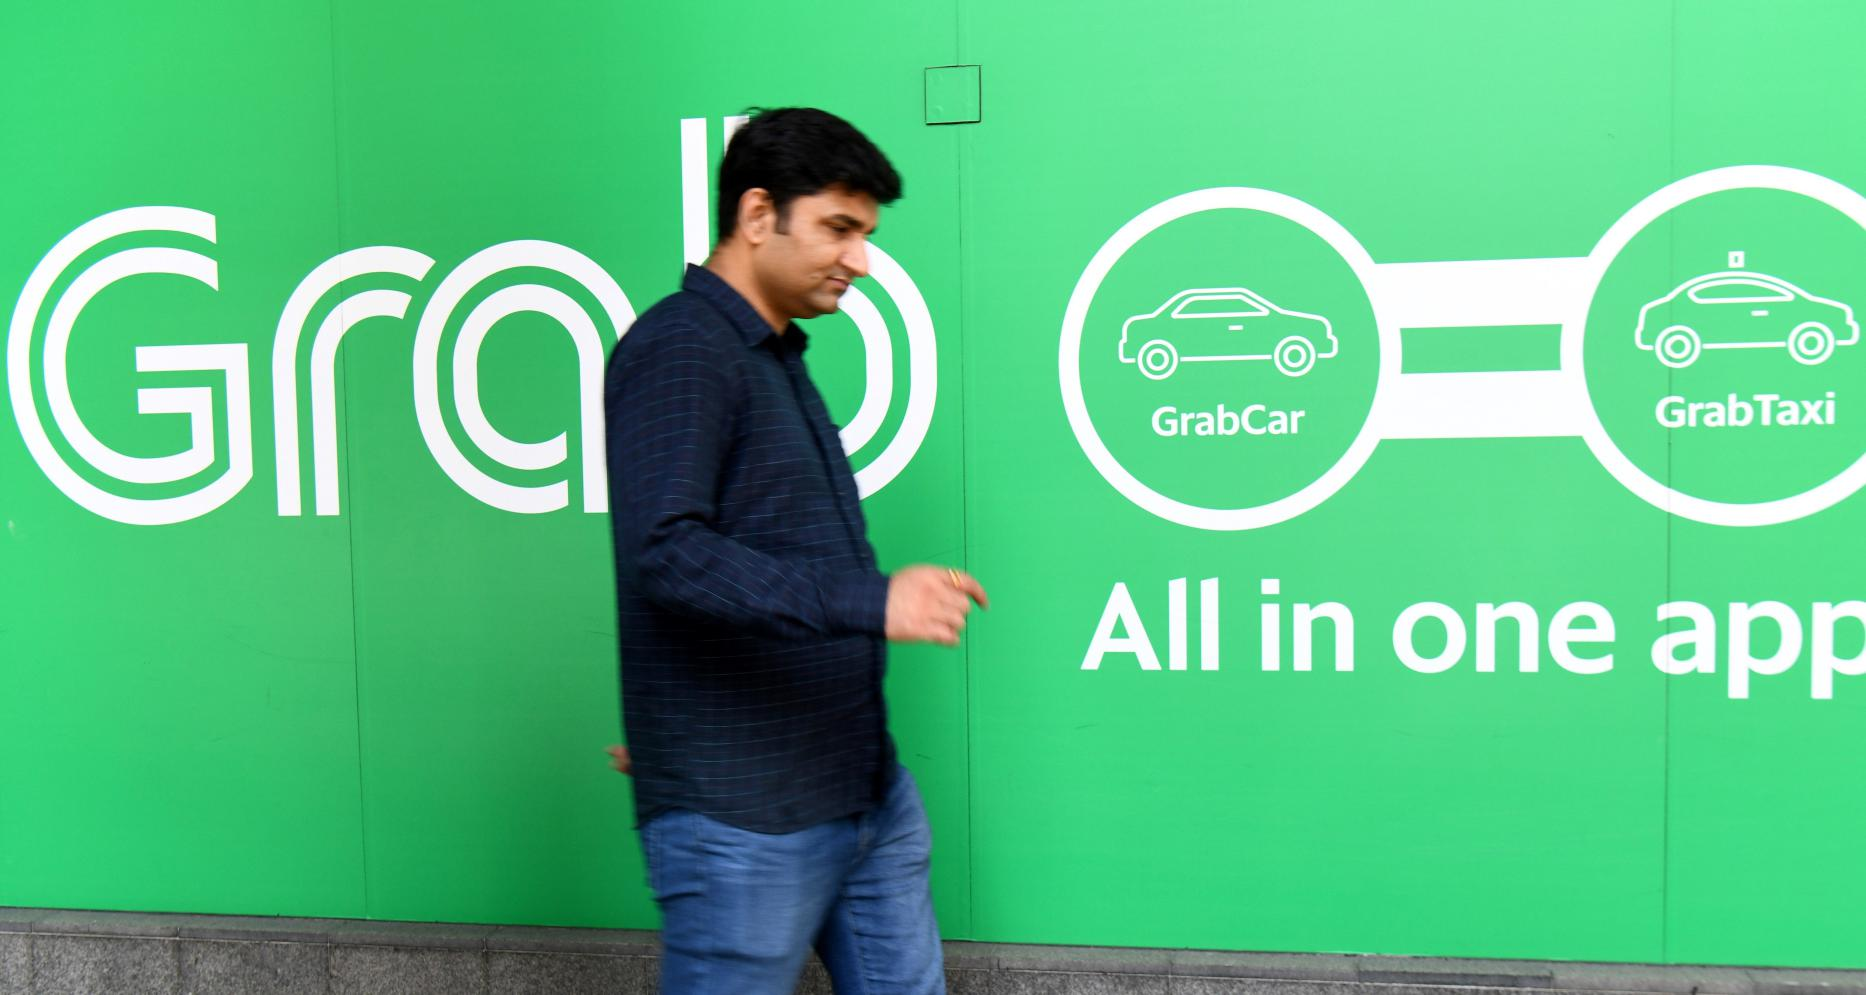 Grab raises fundraising target to $5B as Southeast Asia's ride